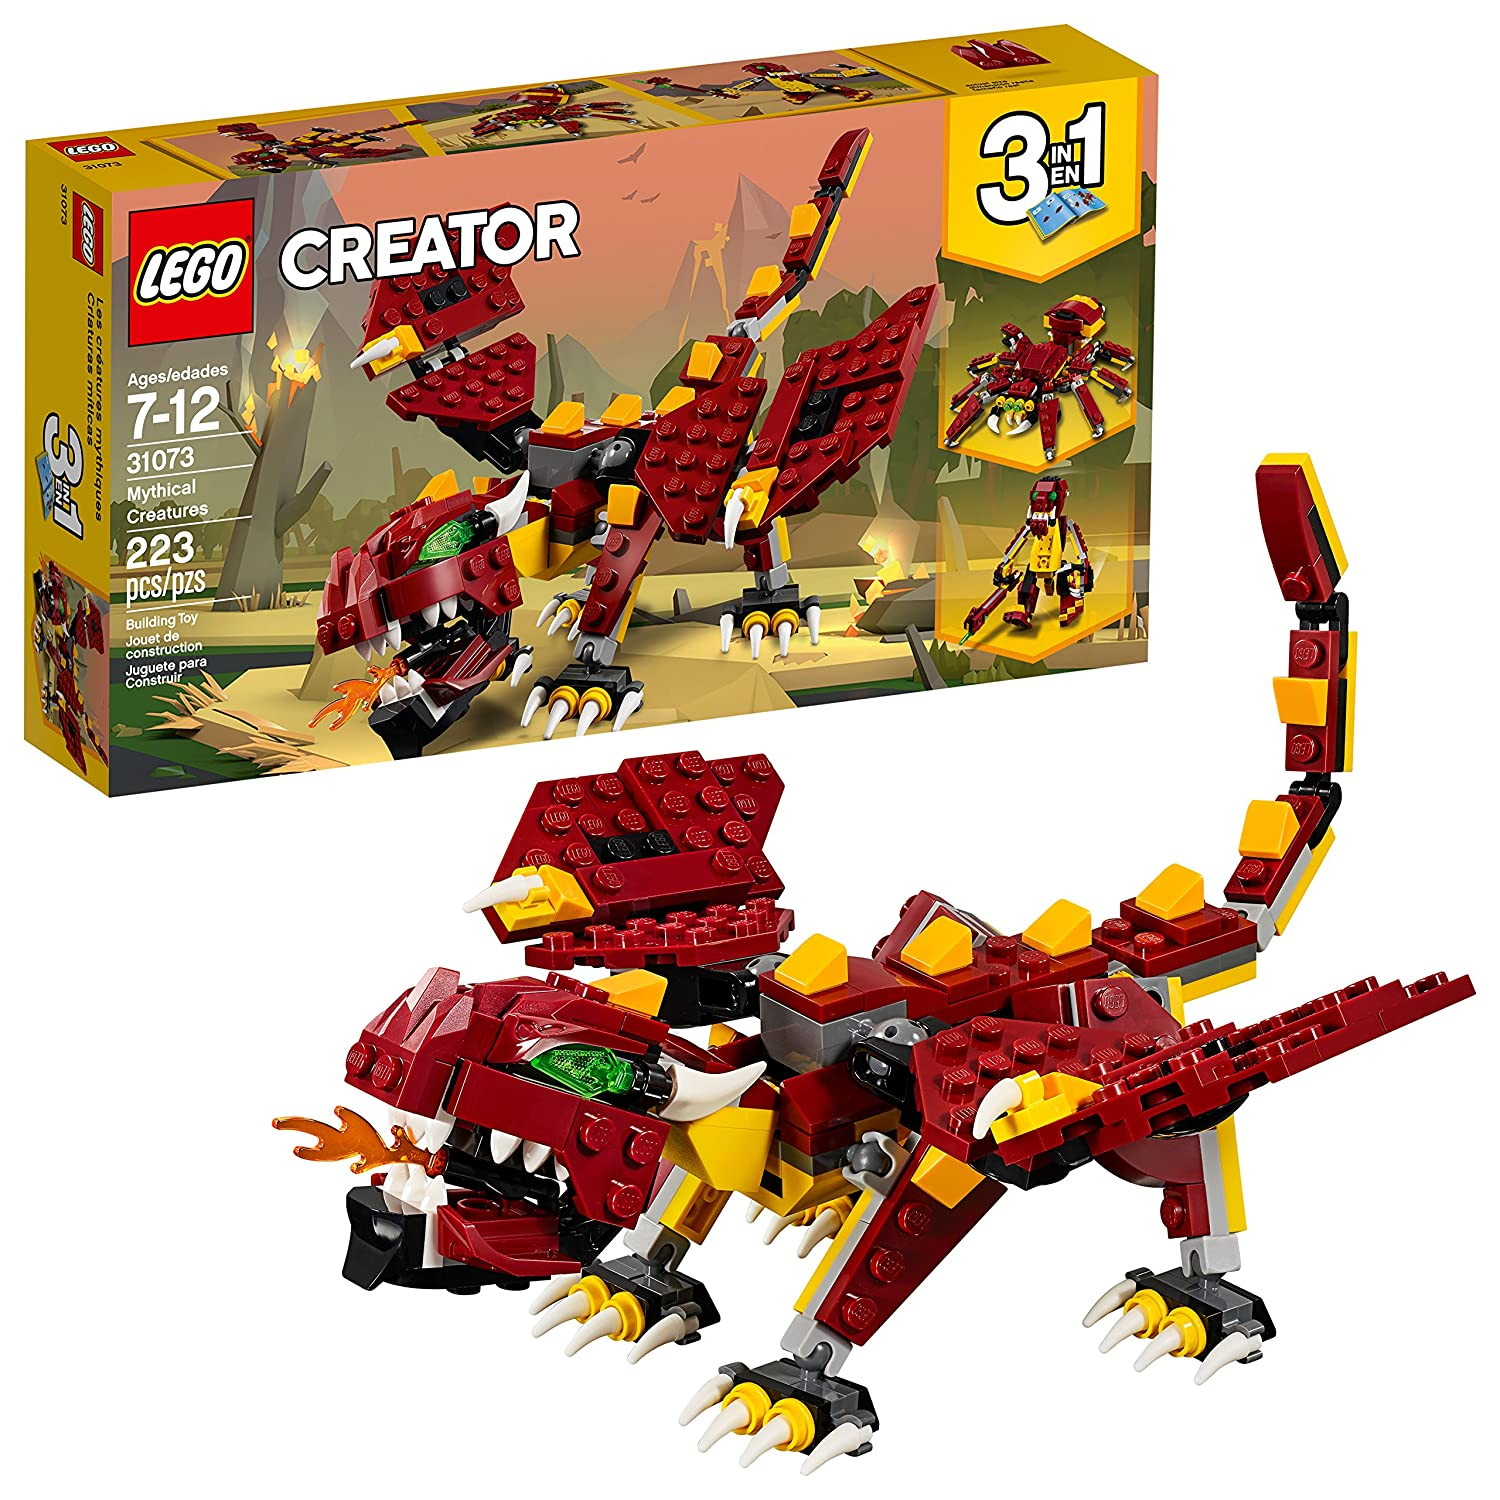 LEGO Creator 6213403 Mythical Creatures 31073 Building Kit (223 Piece)